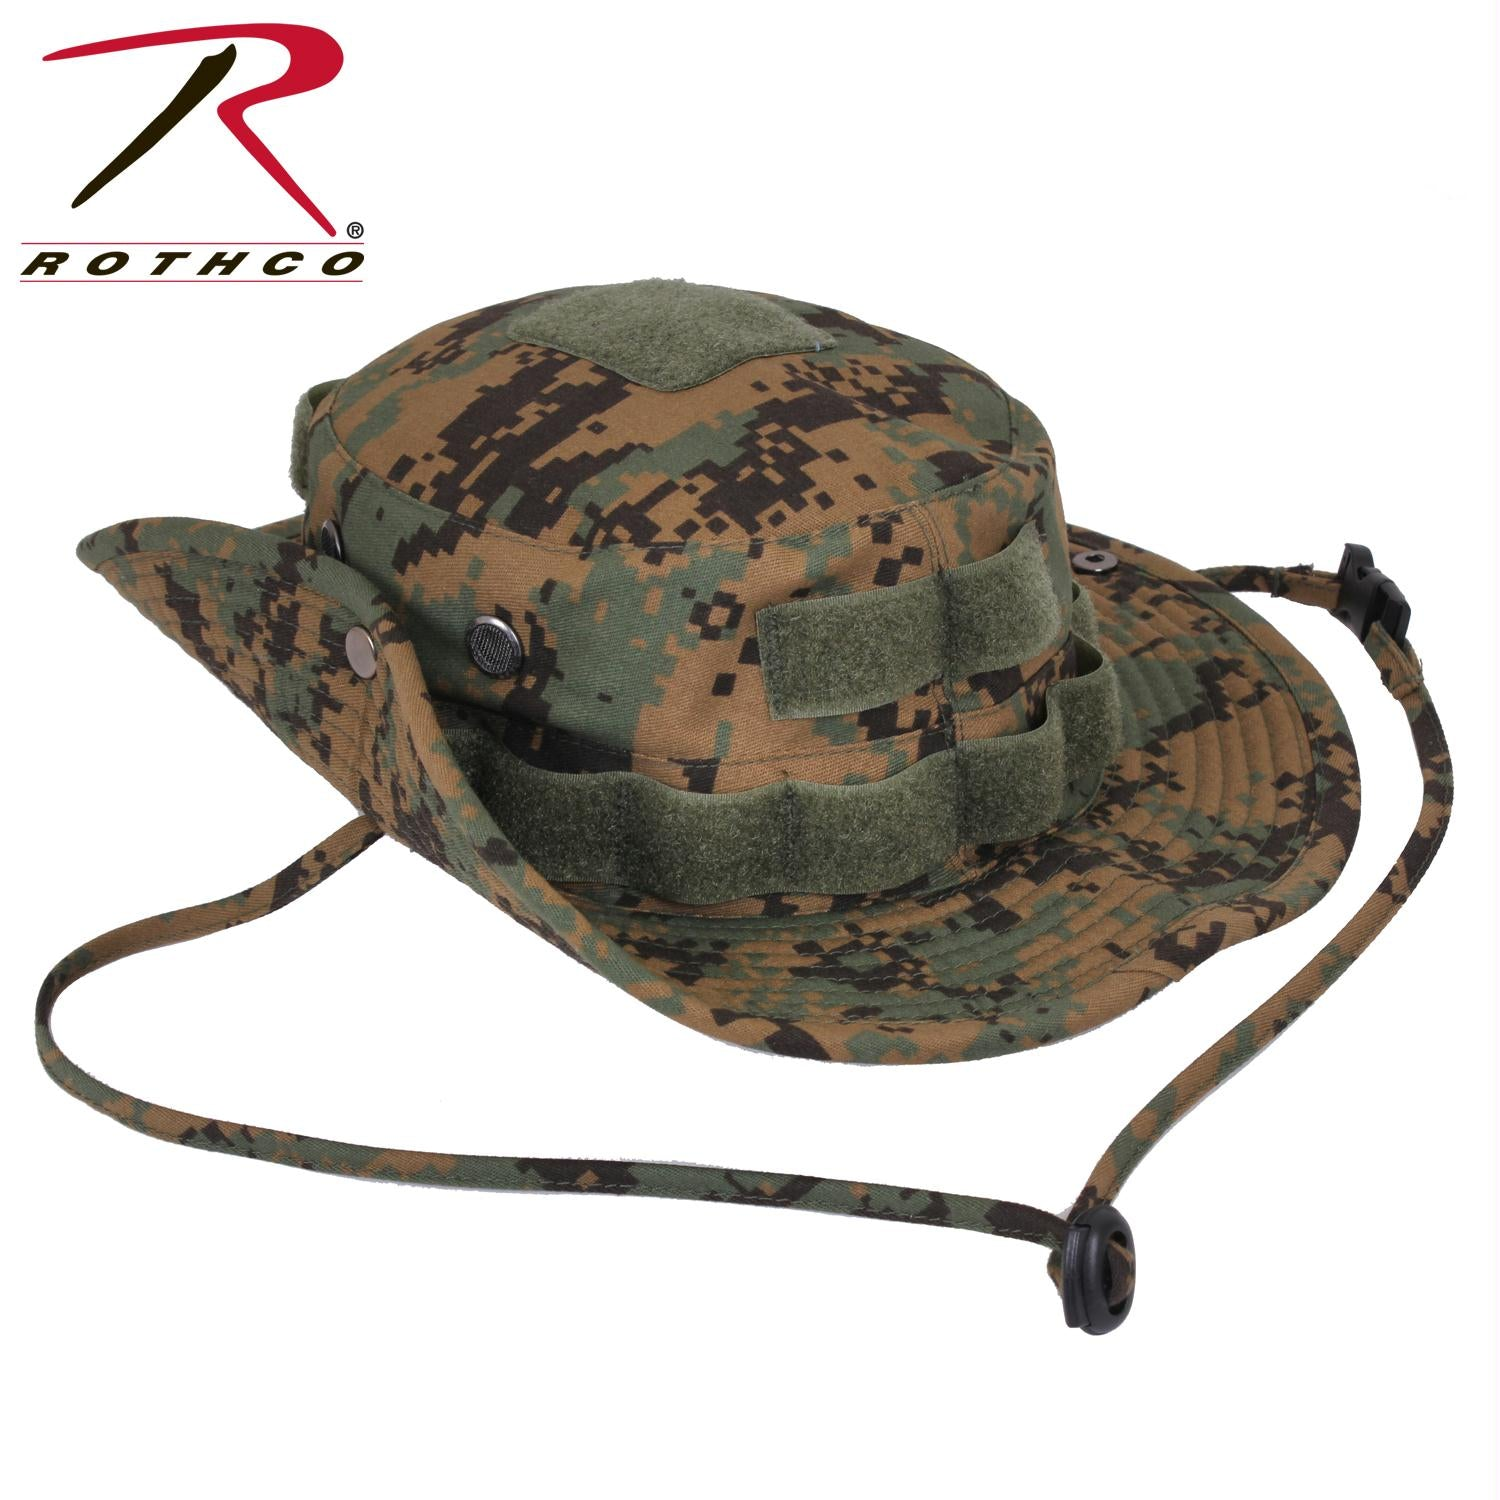 Rothco Tactical Boonie Hat - Woodland Digital Camo / 7 3/4